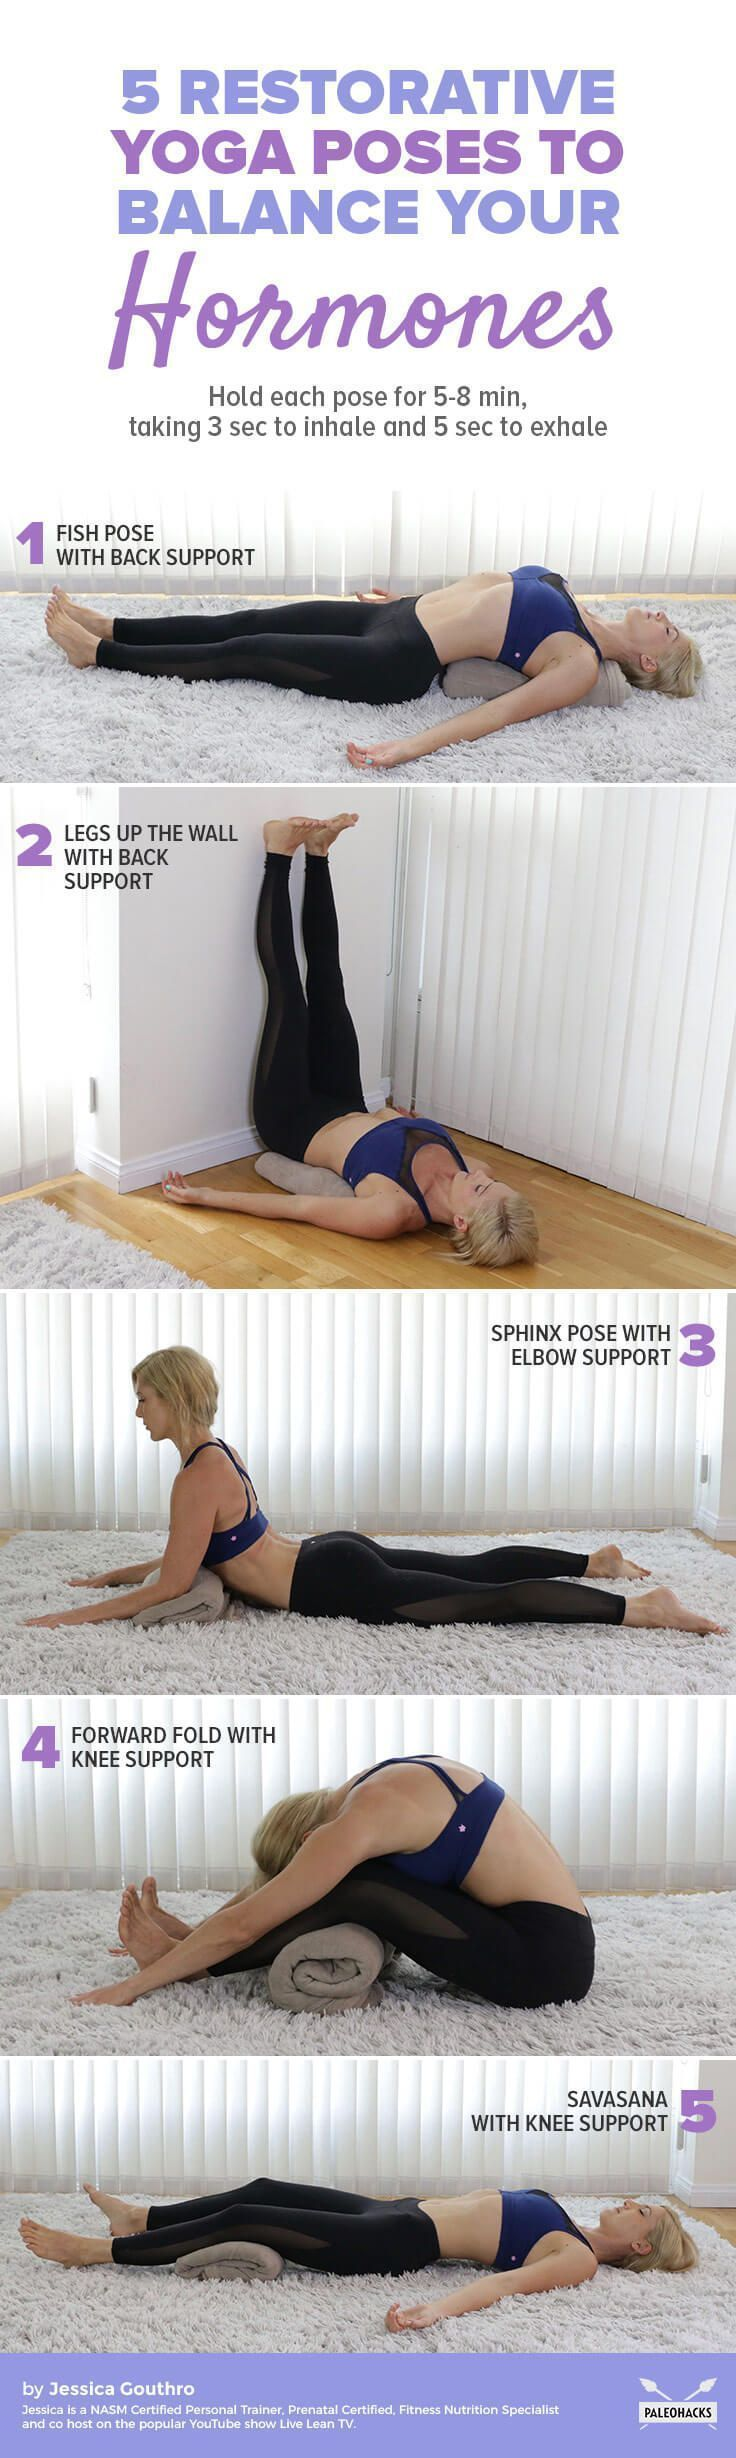 If You're In Pain, START HERE. 10 Exercises for Back and Hip Pain You Should Be Doing Now. Do This 5 minute Exercise When It Hurts to Stand. Your Hip Flexors and Hamstrings Can Hurt Your Back. The Best Tips for Back Spasms. An Easy Stretch To Relieve Glute (Butt) Muscle Pain. Conquer Your Morning Stiffness. #HipFlexorsTips #exercisetips